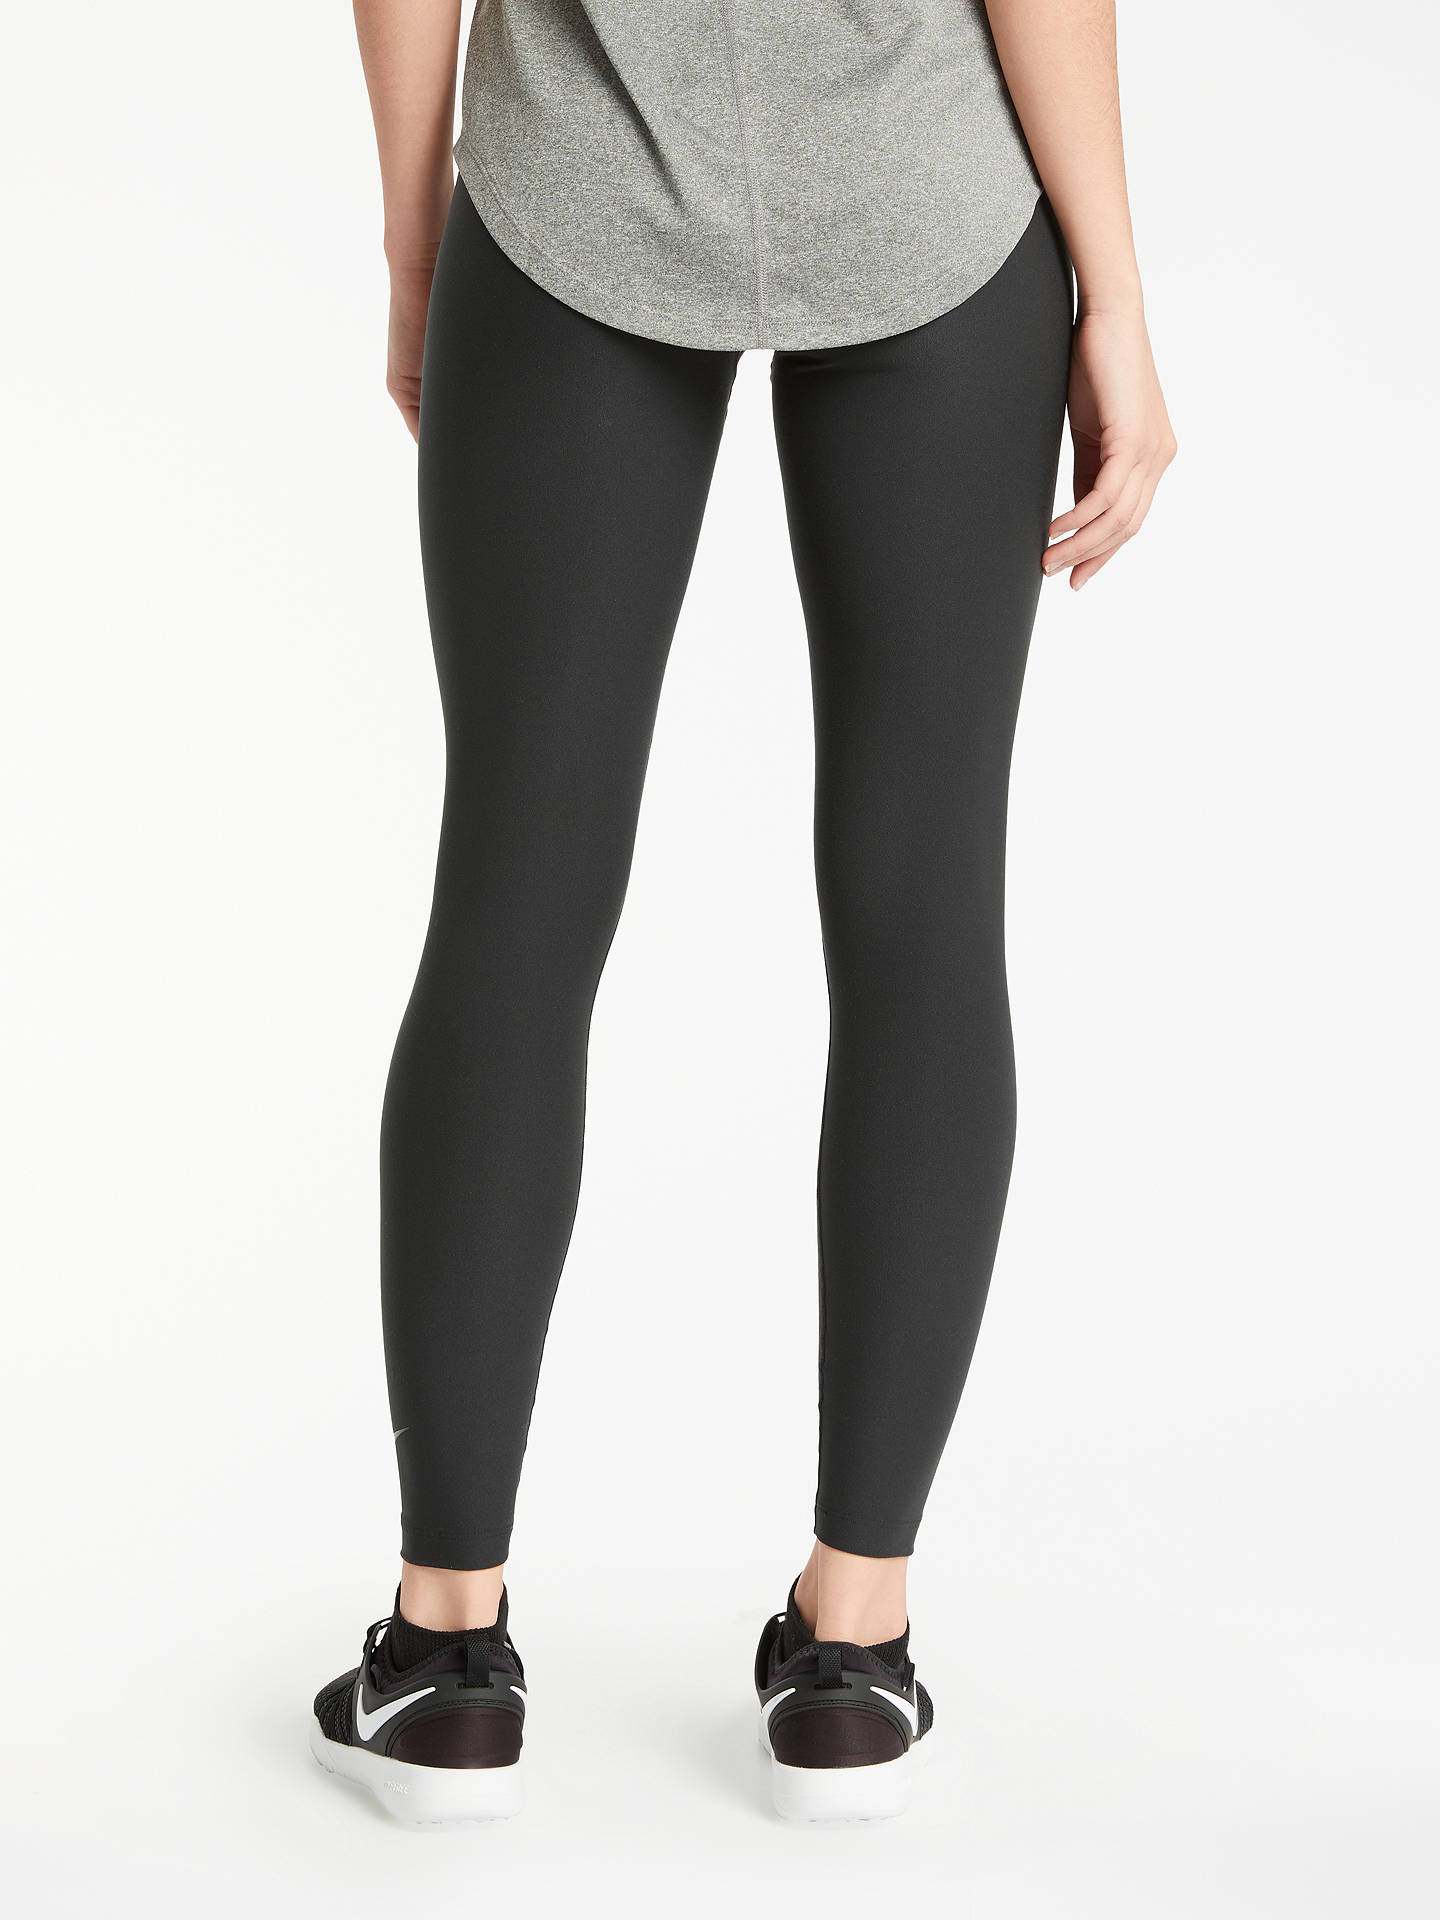 67b9b6f946941 ... Buy Nike Sculpt Hyper Training Tights, Black, XS Online at johnlewis.com